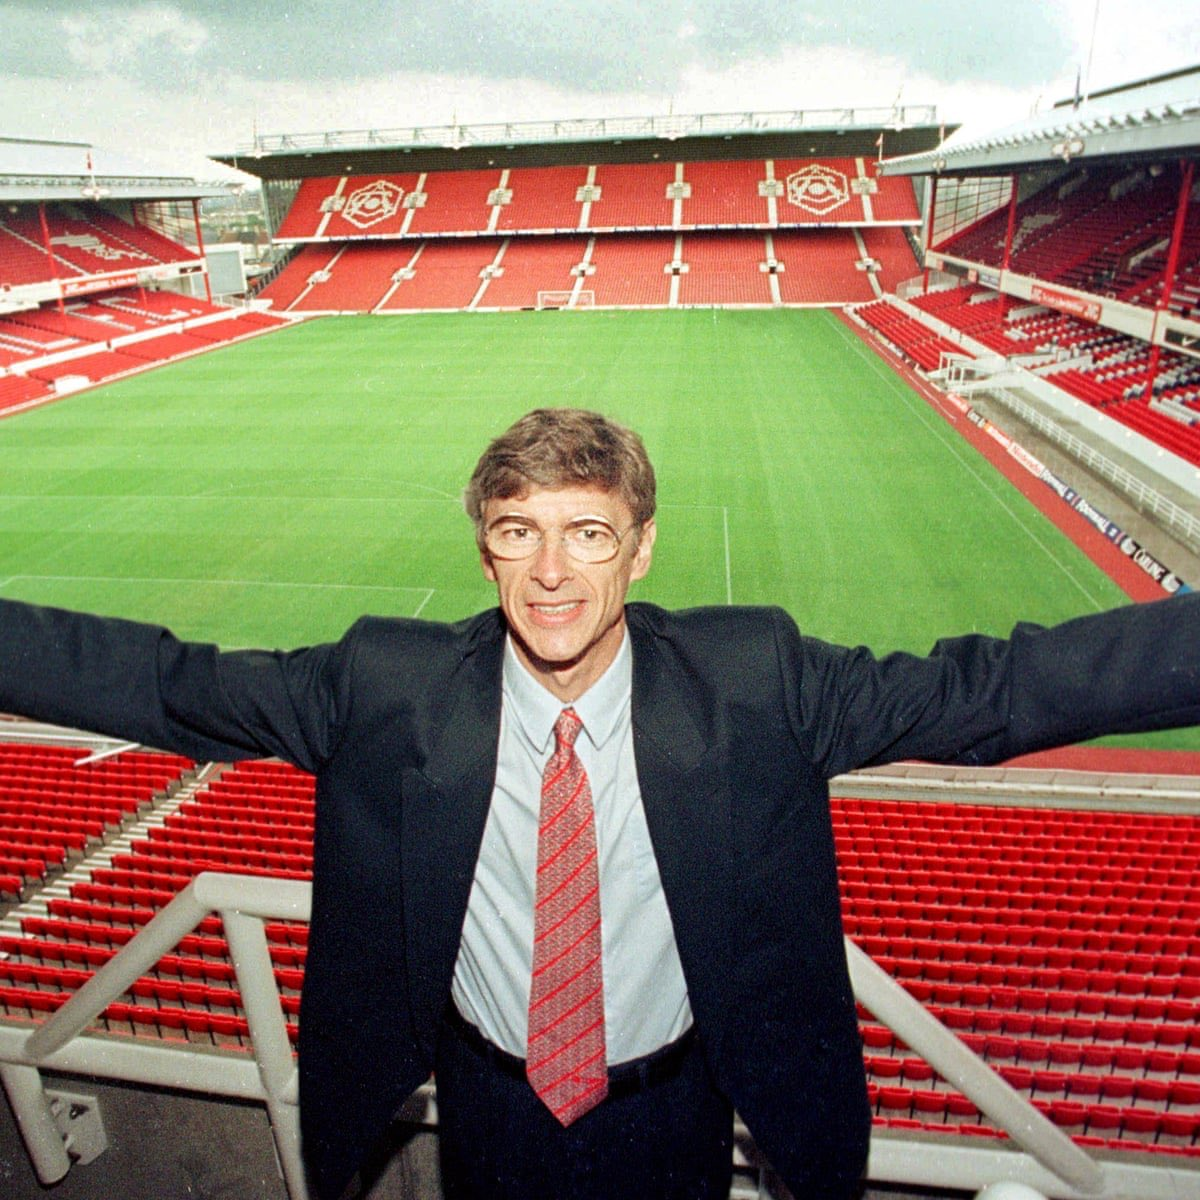 There are 22 years, 1,228 games, 704 wins, 2,285 goals and 10 trophies between both photos.  On this day in 1996, Arsène Wenger arrived in England. https://t.co/MlsqTRBSBz